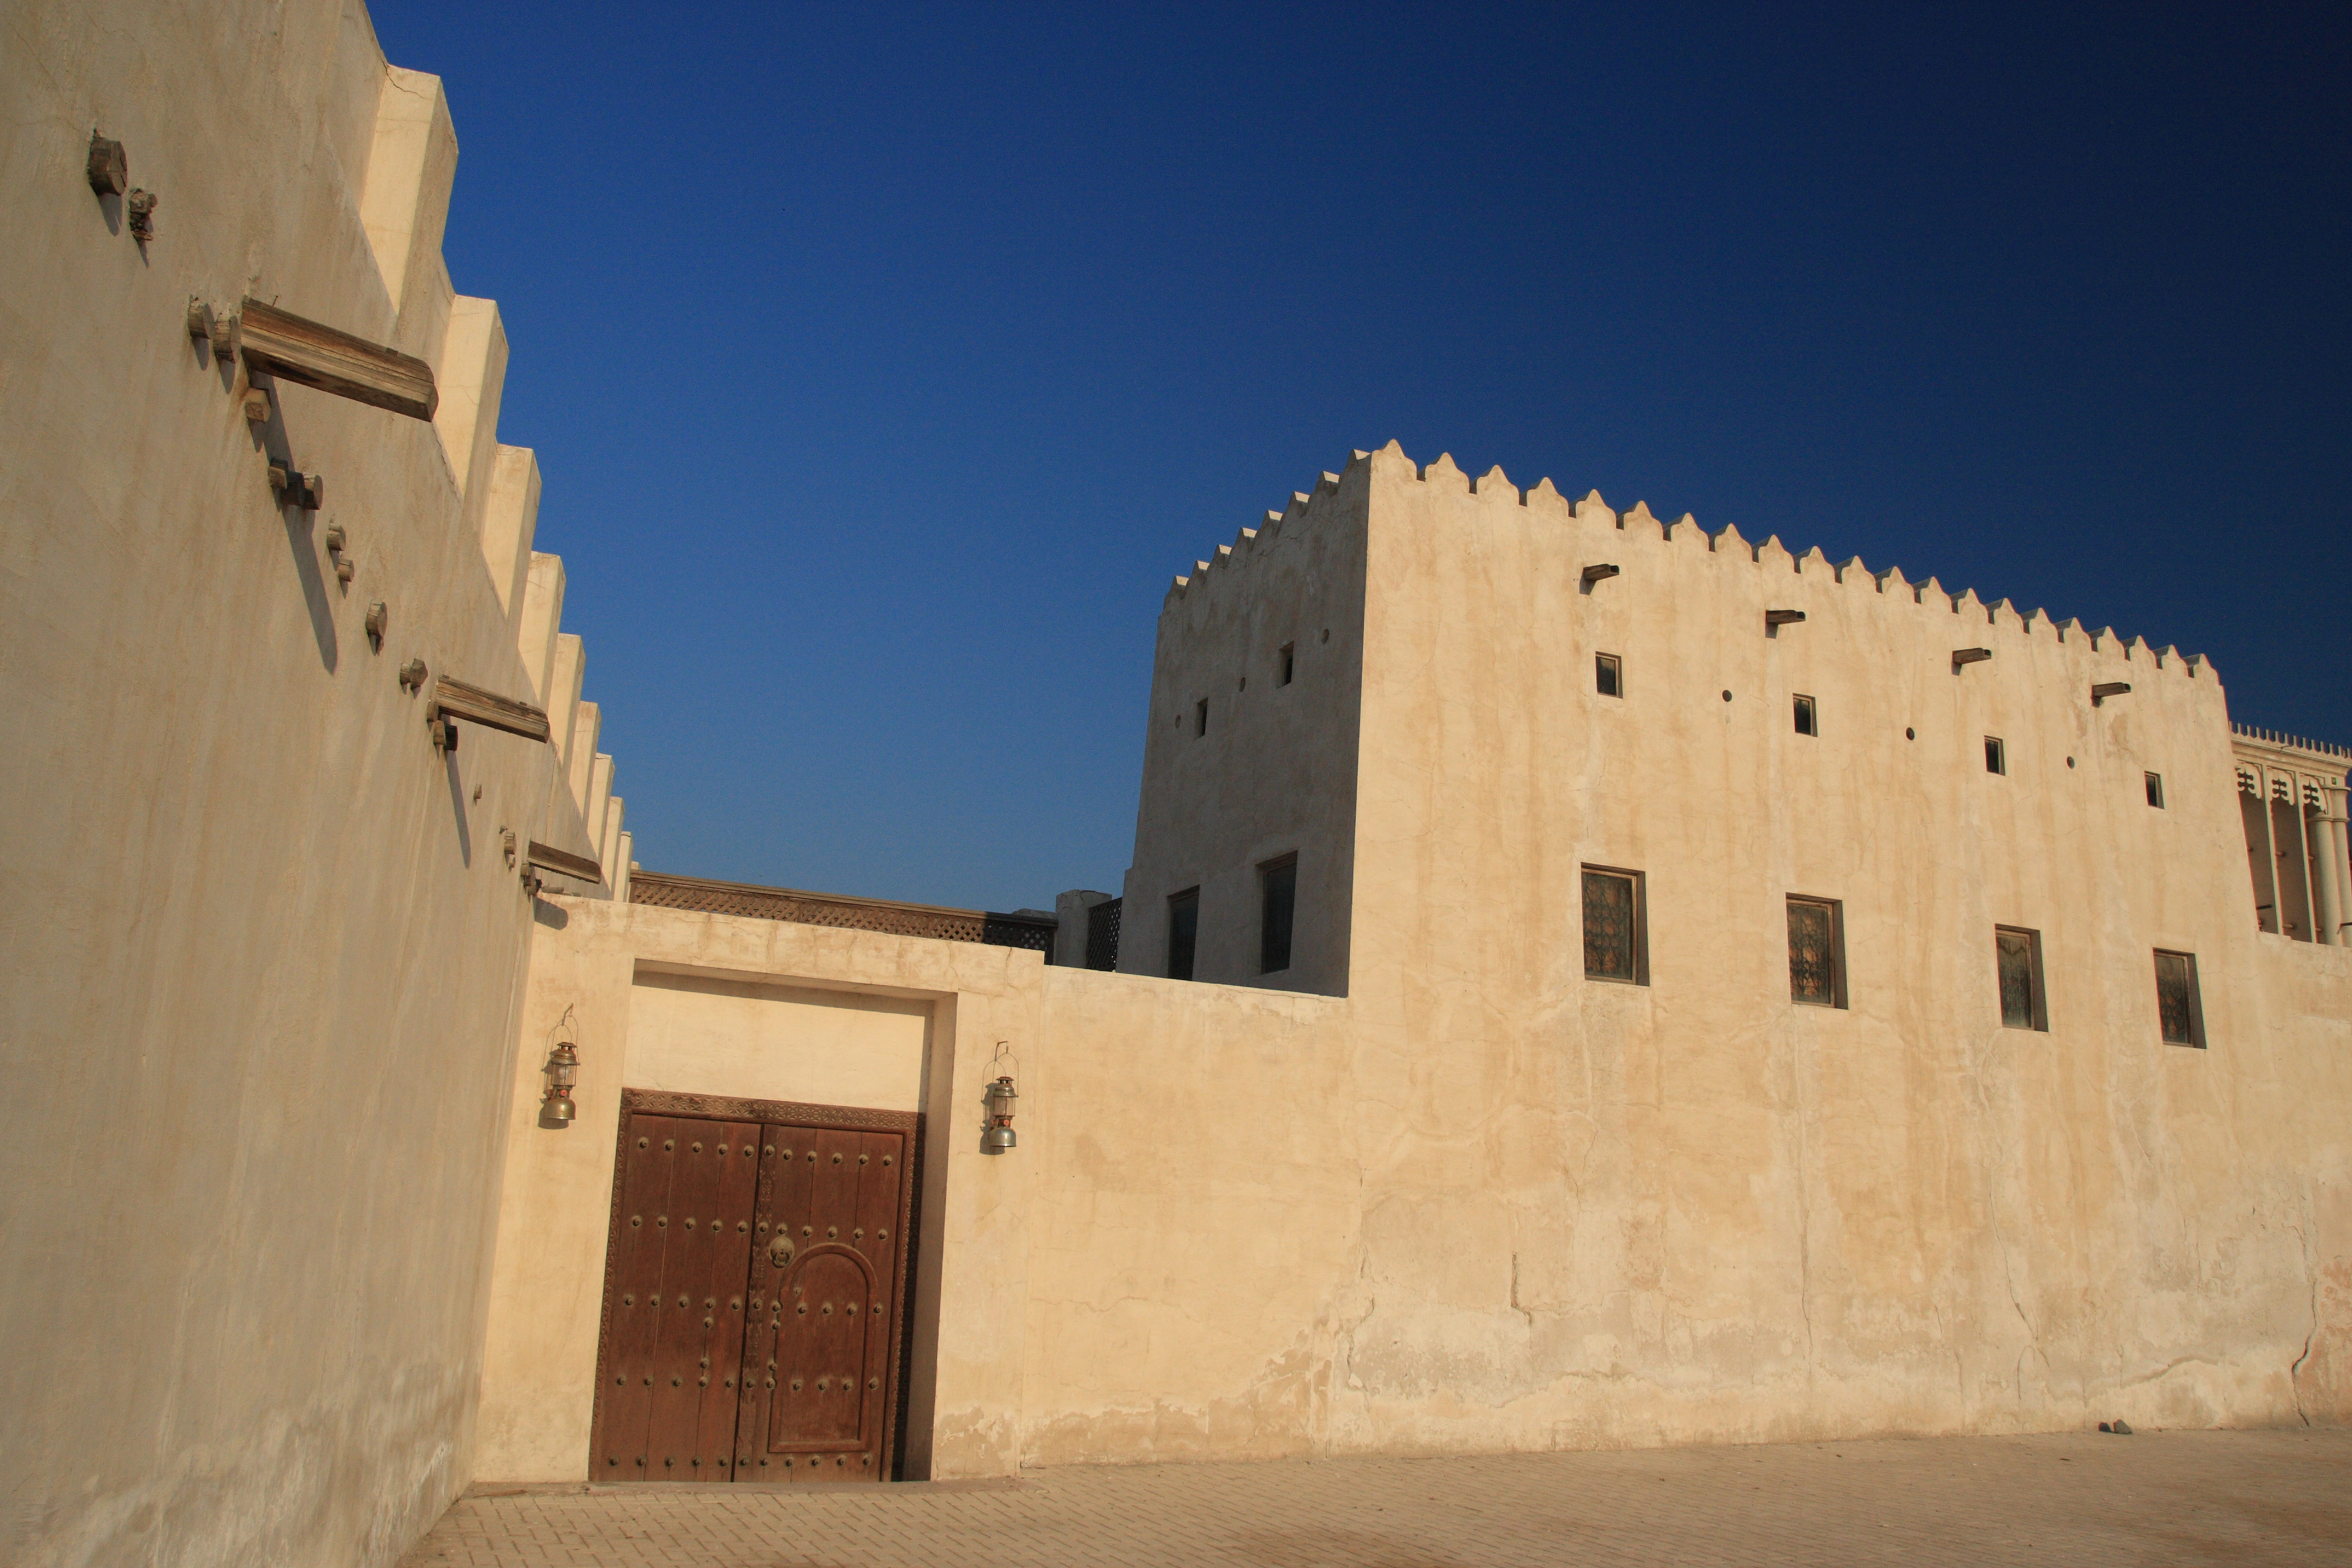 Heritage area- one of the top attractions in Sharjah